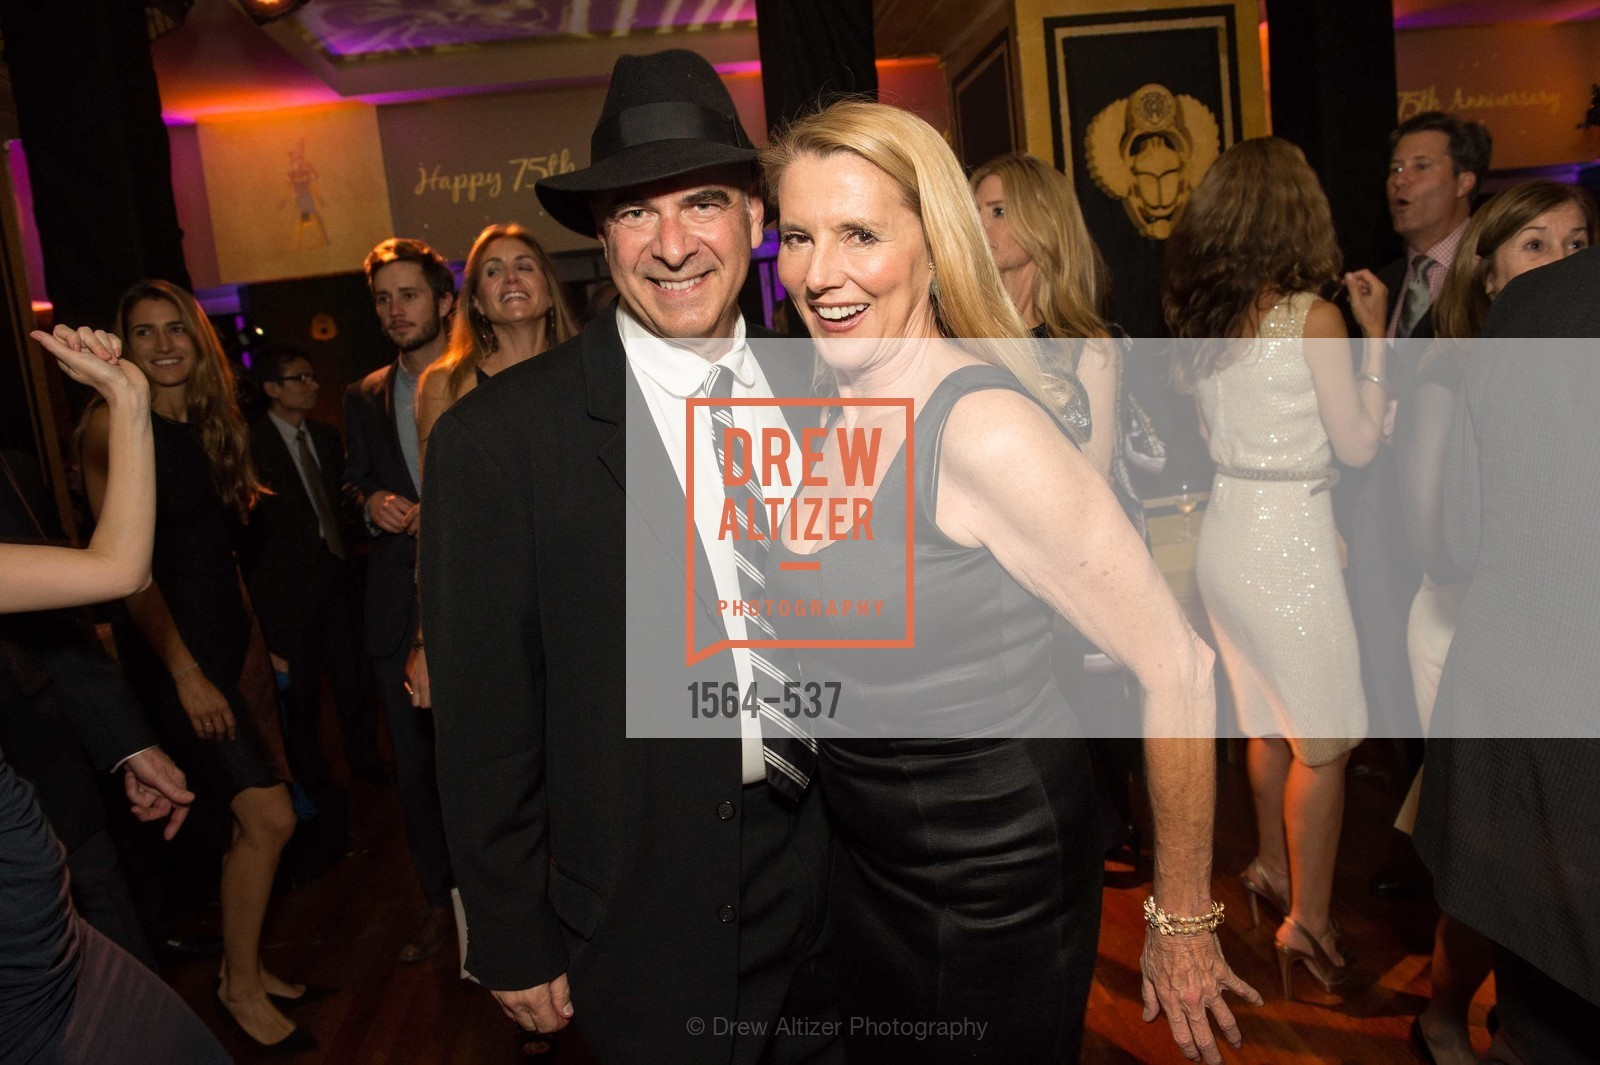 Tod Donobedian, Christina DeLimur, TOP OF THE MARK'S 75TH Anniversary Party, US, November 7th, 2014,Drew Altizer, Drew Altizer Photography, full-service agency, private events, San Francisco photographer, photographer california